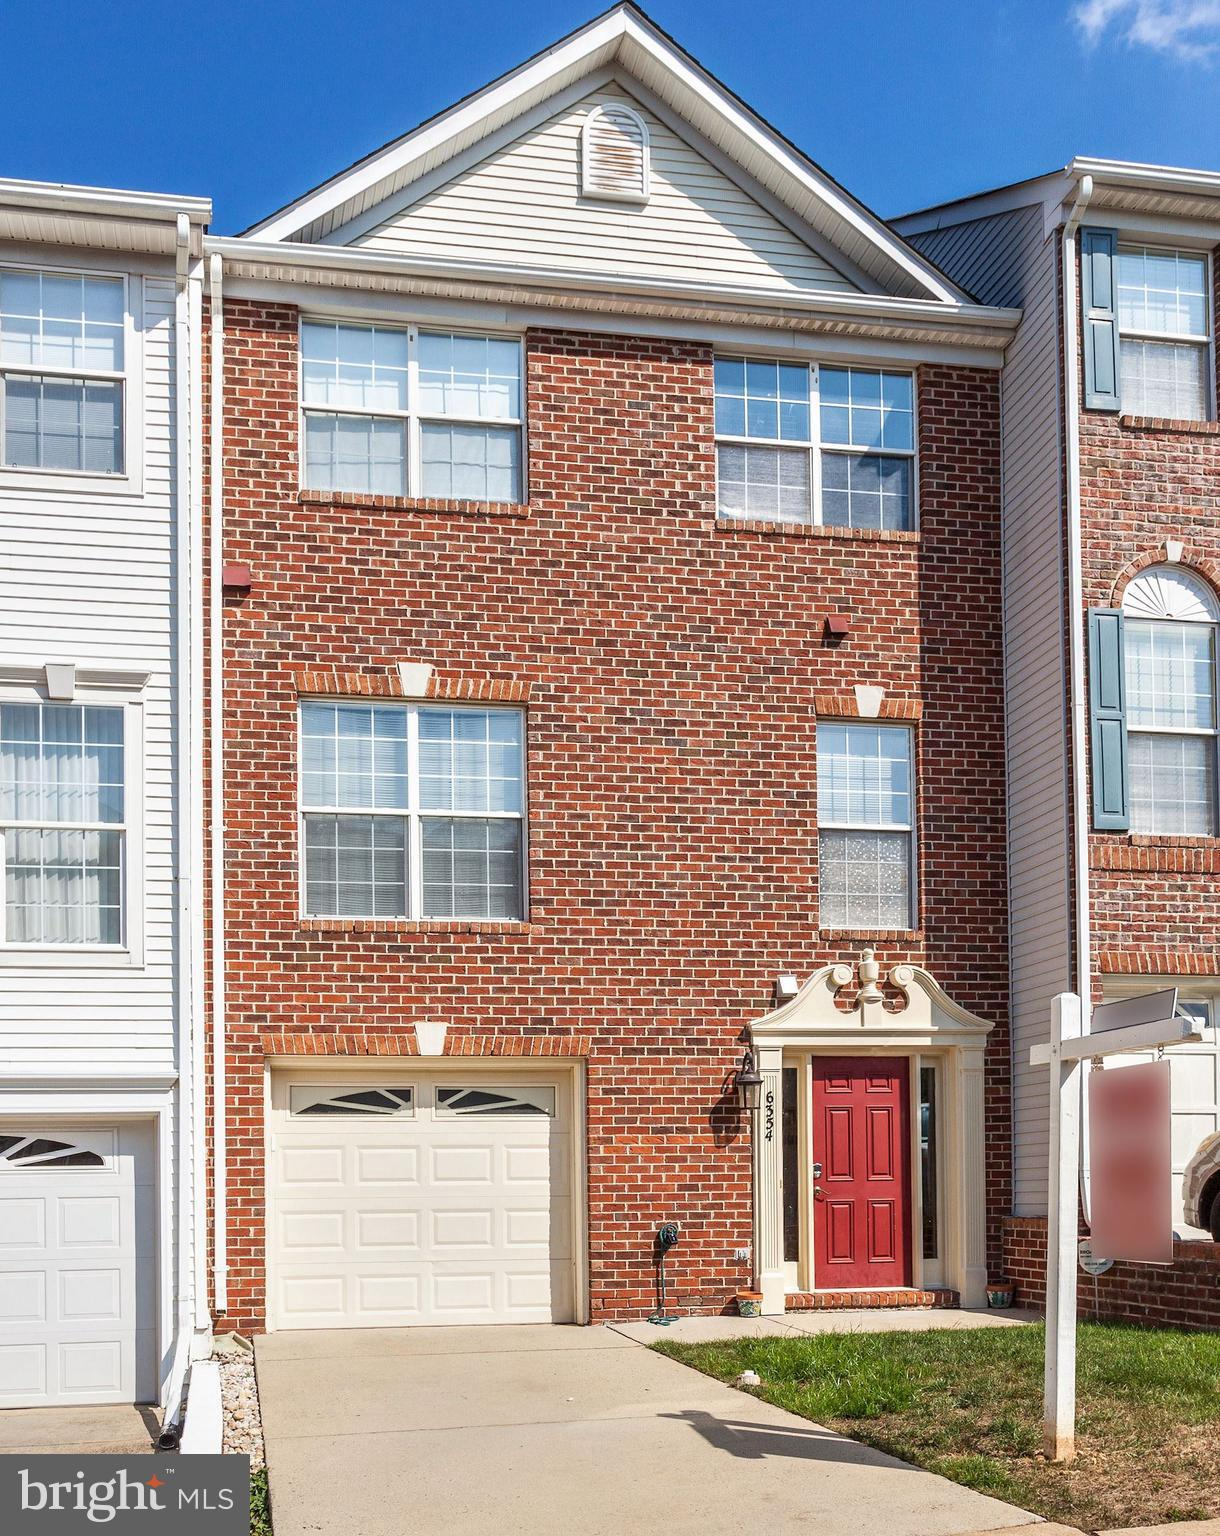 Convenient to the best of Springfield, but tucked away. Brick front, three level, 3BR, garage TH w/ 2 full + 2 half baths, Open, flowing floorplan for easy everyday living and entertaining. Updates incl: new roofing, main lev + bsmt flooring (2018), HWH (2017), central A/C (2016), master bath & kitchen (2015). Deck off of main + patio on bsmt level. Convenient to commuter options & move-in ready!